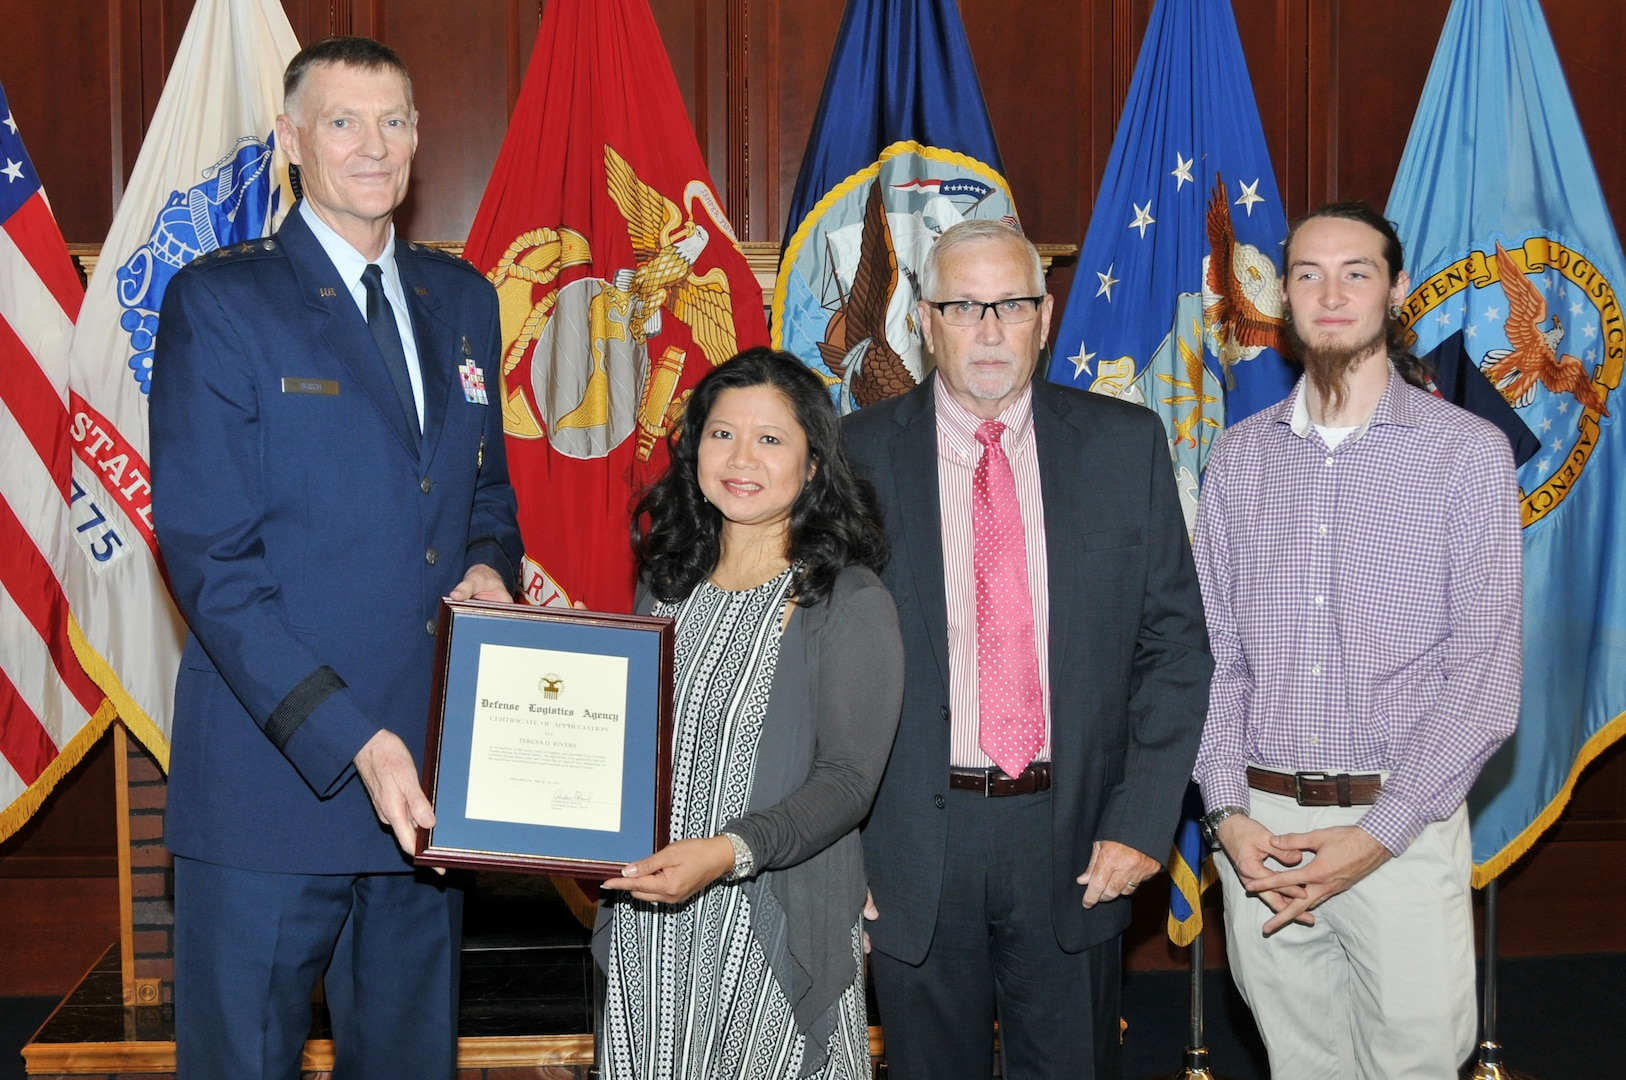 DLA Director Air Force Lt. Gen. Andy Busch (far left) presents an award to Air Force Lt. Col. Teresa Rivers for supporting her husband, Randy Taft (second from right) in his career  as son Cody Taft (far right) looks on.